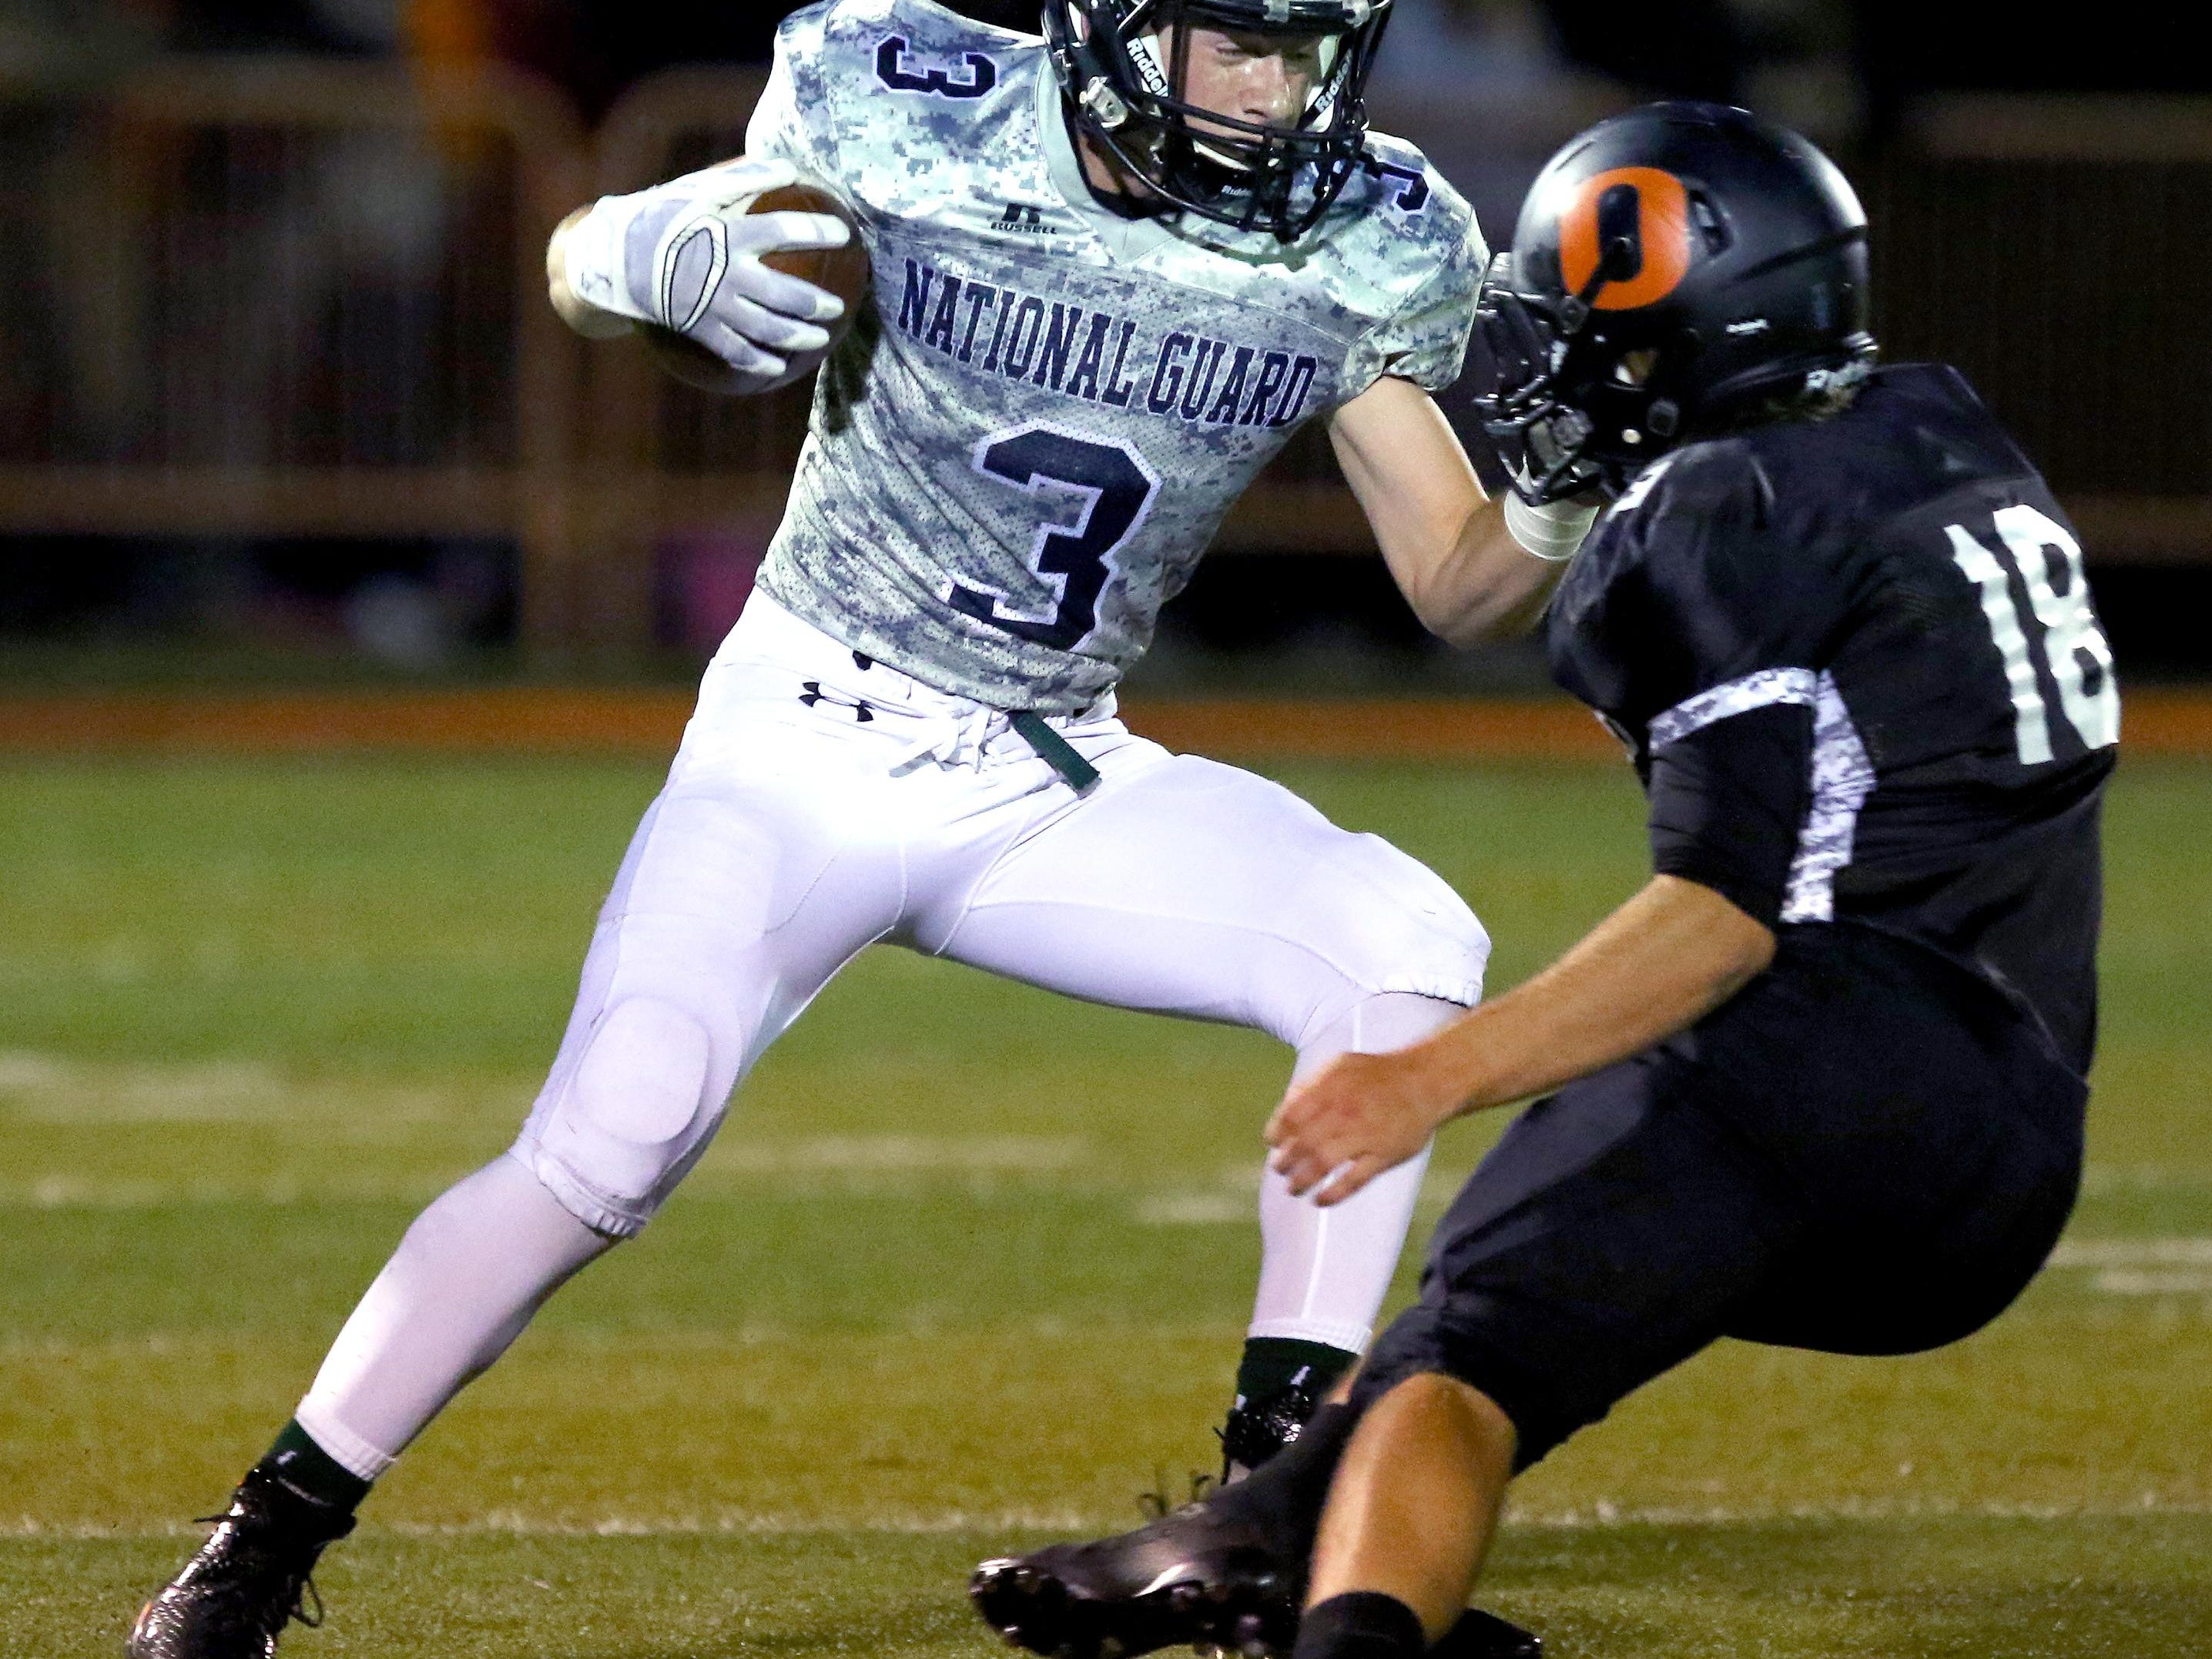 West Salem wide receiver Hunter Johnson runs after a catch against Sprague during a Greater Valley Conference game, Friday, Oct. 2, 2015, in Salem, Ore.